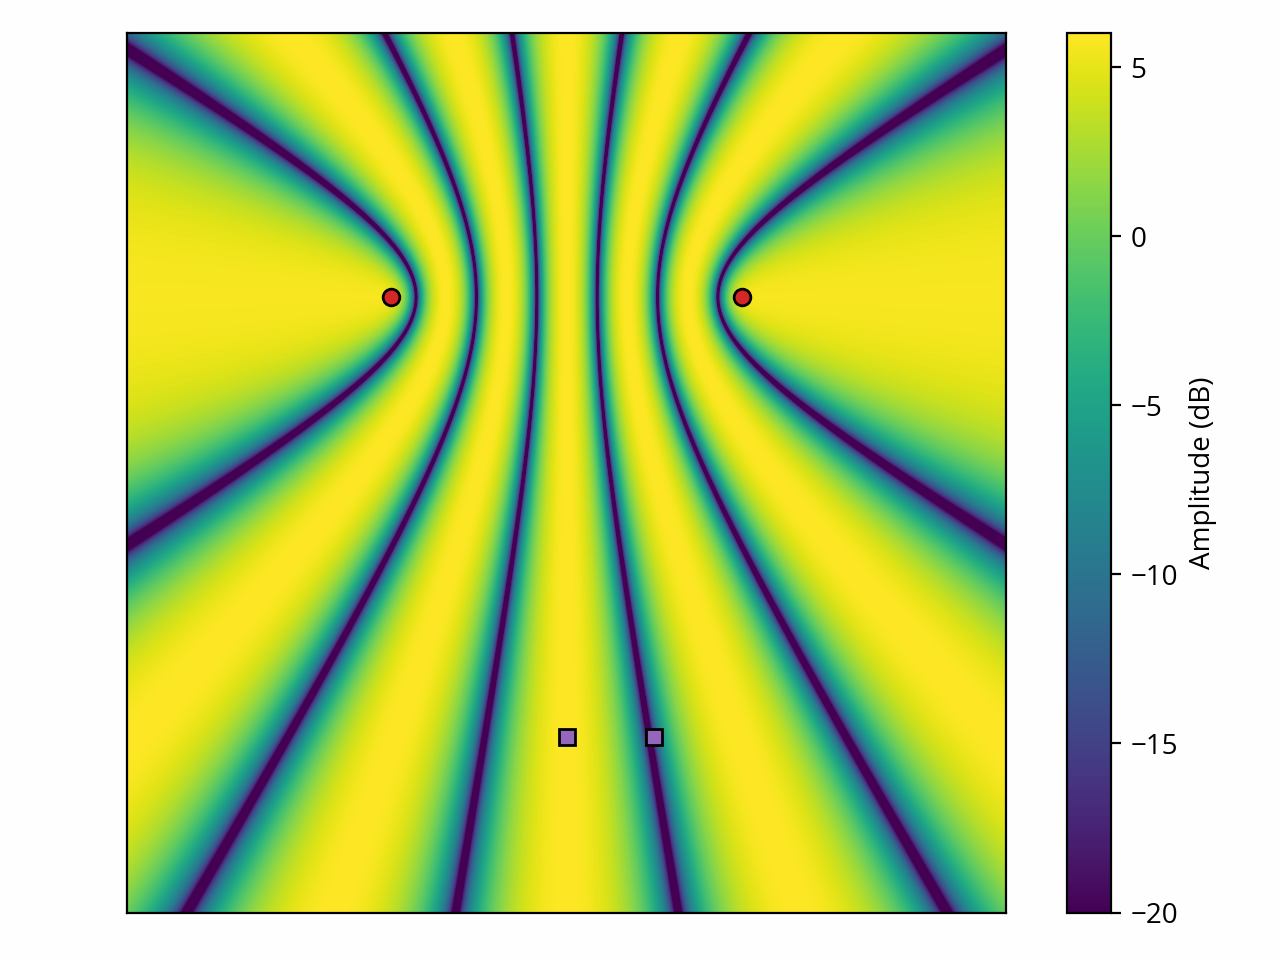 Two point sources, amplitude map